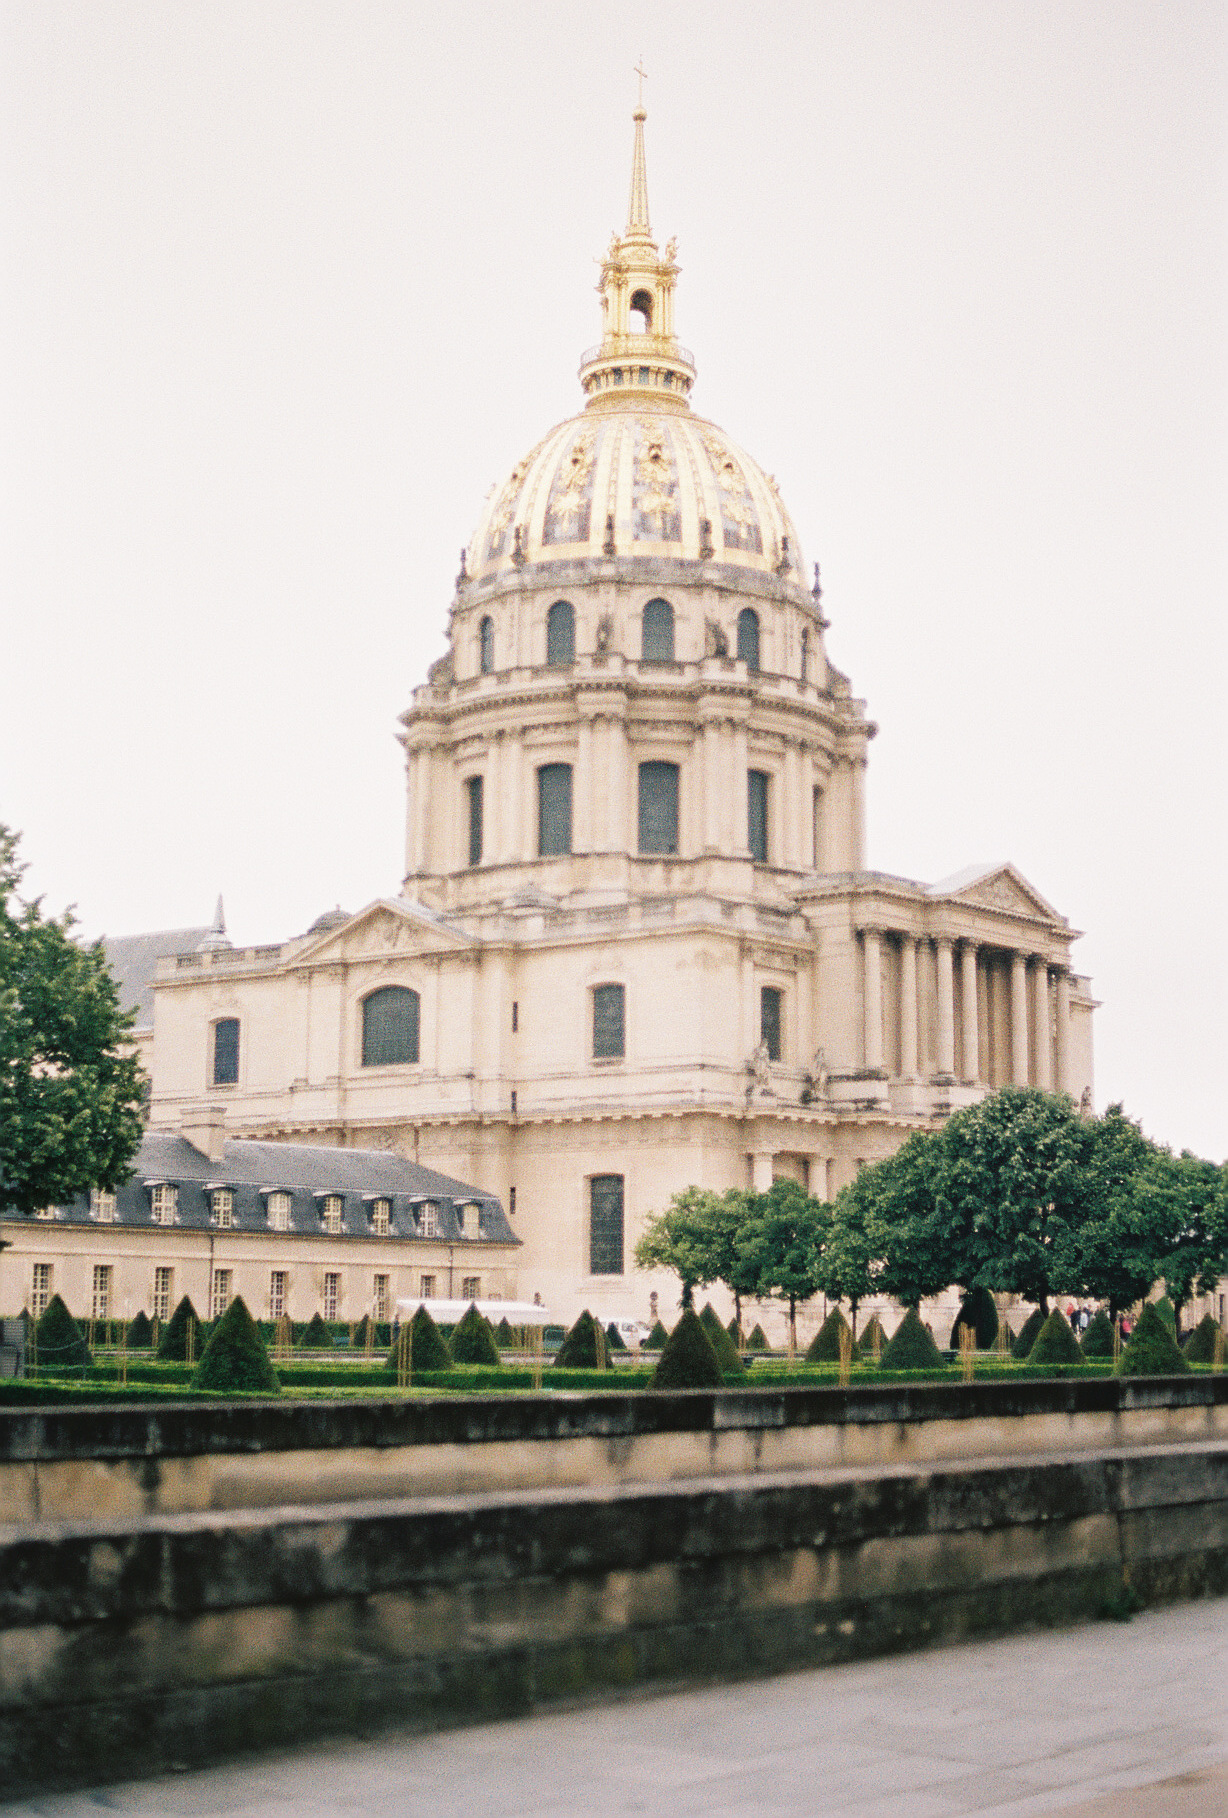 les-invalides-napolean-paris-france-european-honeymoon